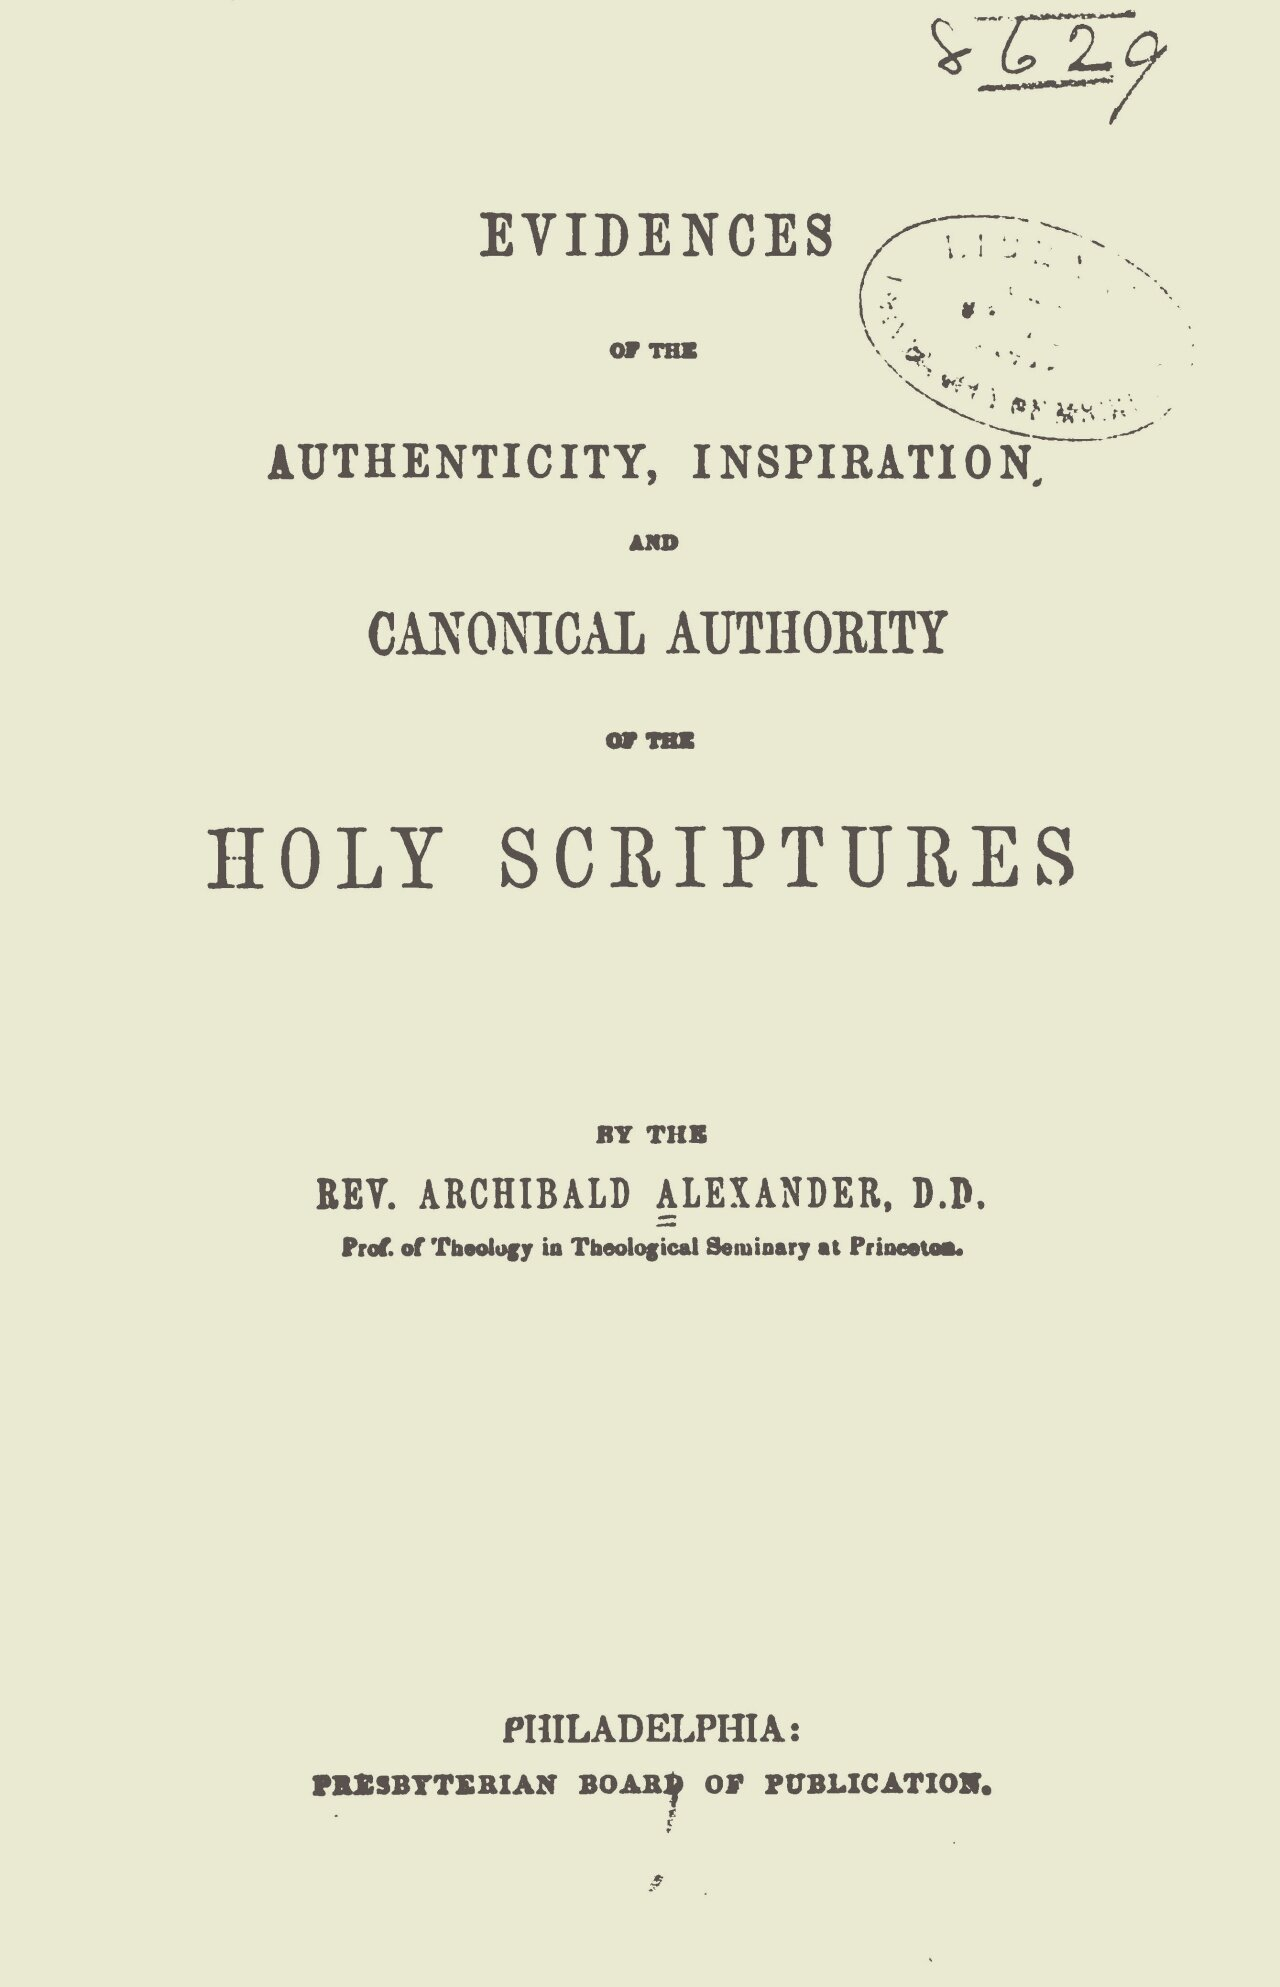 Alexander, Archibald, Evidences of the Authenticity, Inspiration, and Canonical Authority of the Scriptures Title Page.jpg